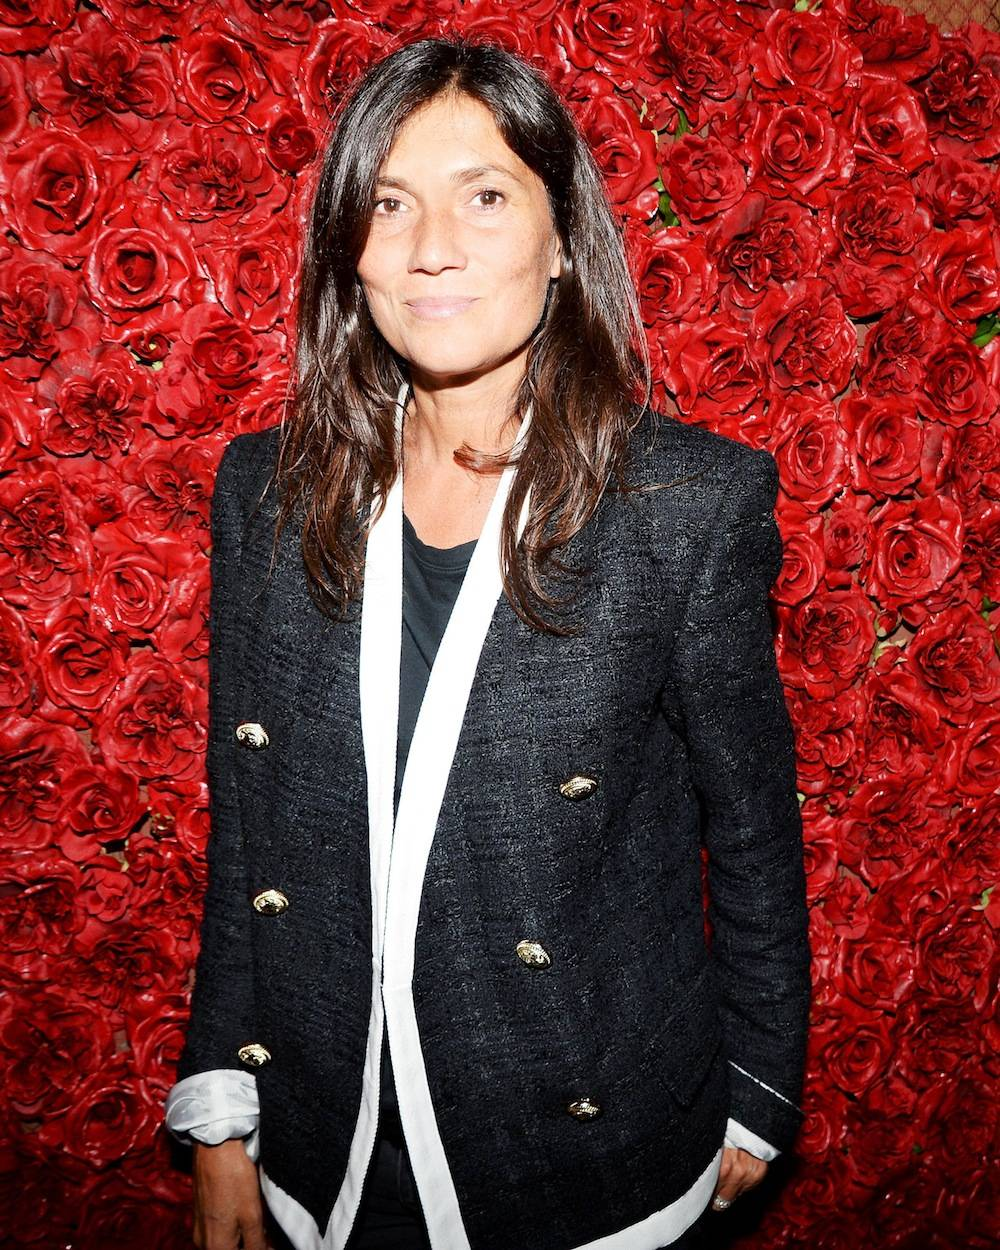 BARNEYS NEW YORK Hosts LOU LIVE in Celebration of the Fall 2013 Campaign Collaboration